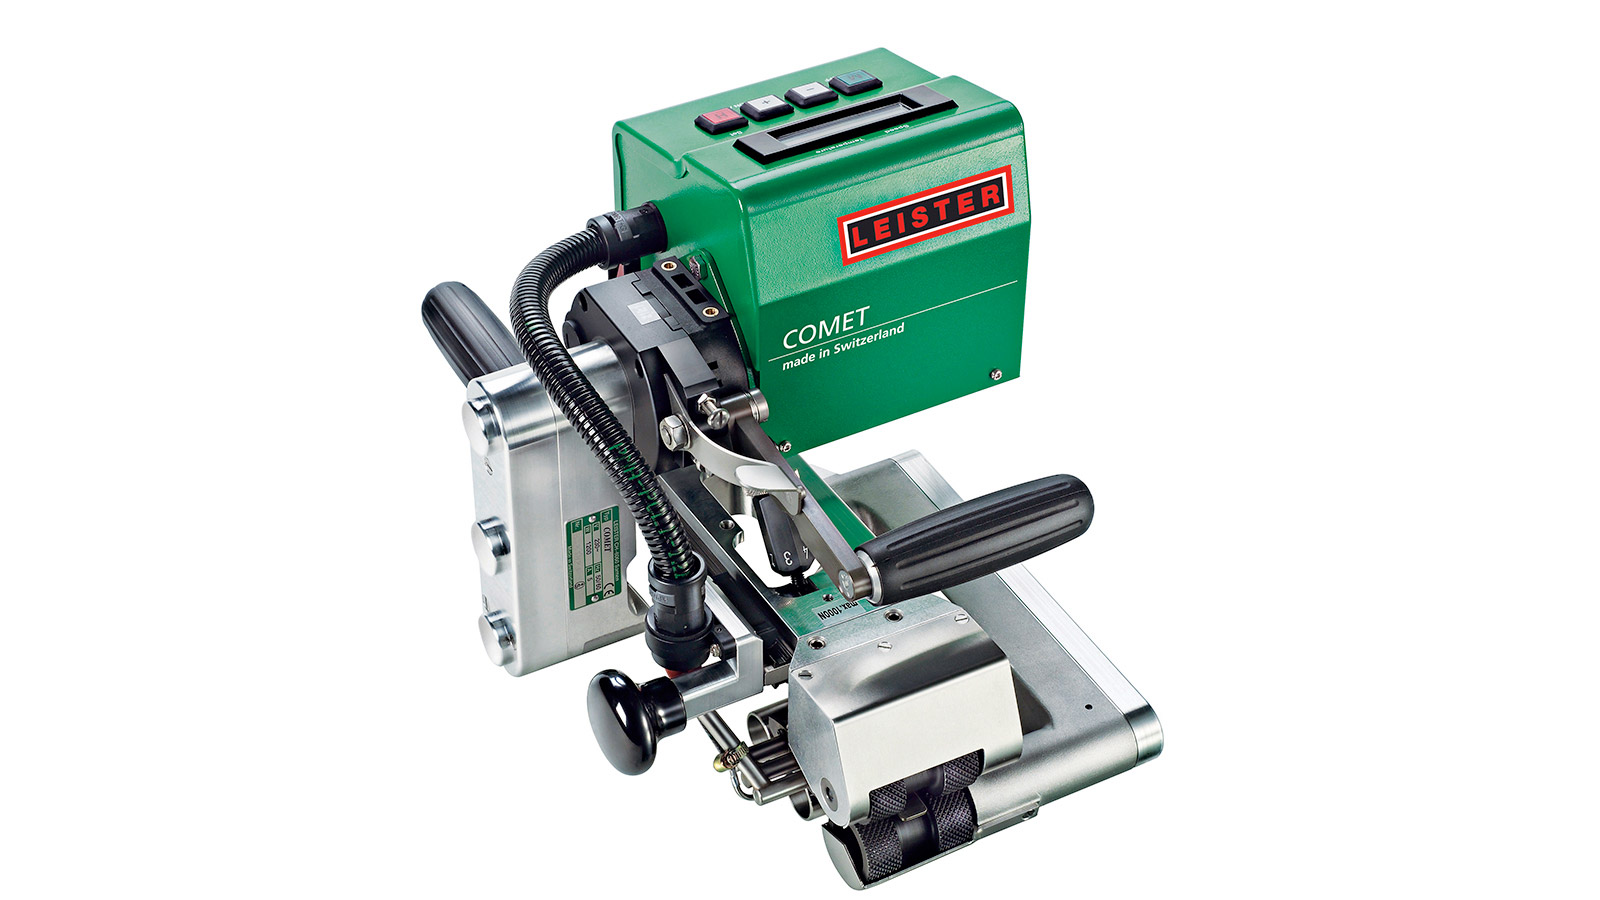 COMET Hot-wedge welder